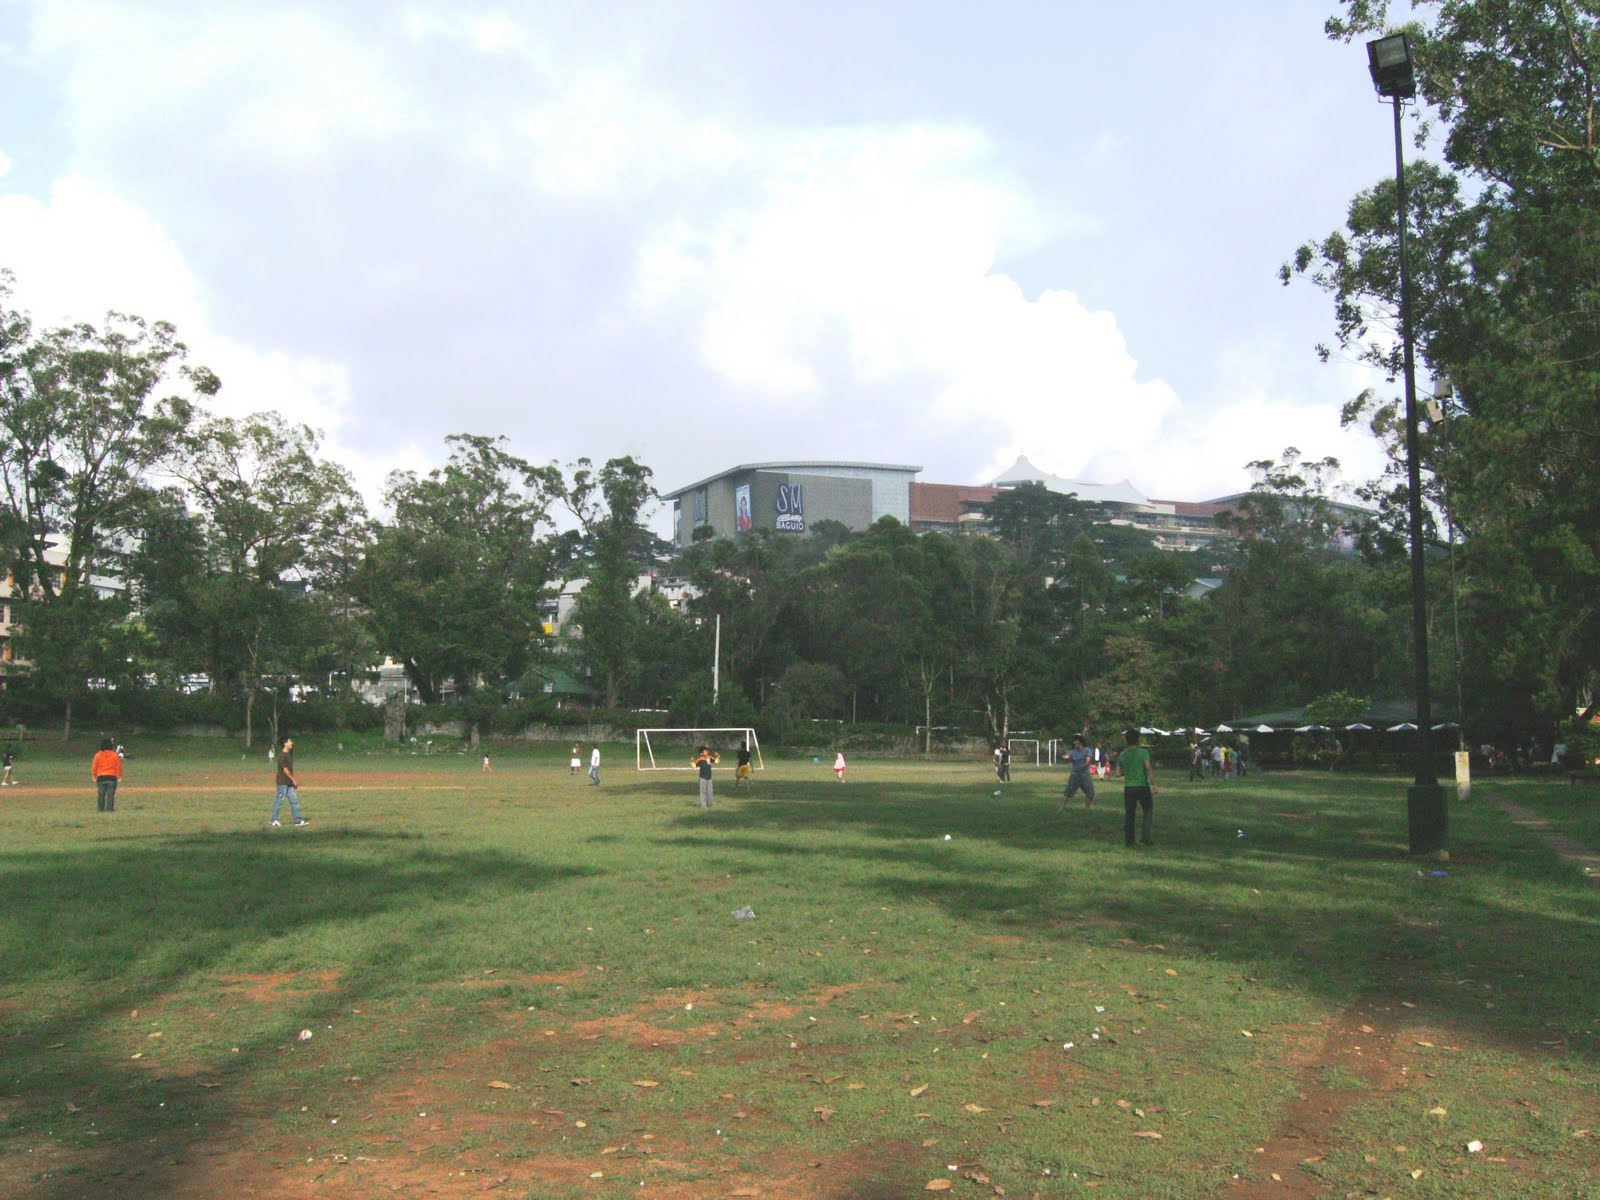 burnham park is one of the tourist spots in baguio city there are